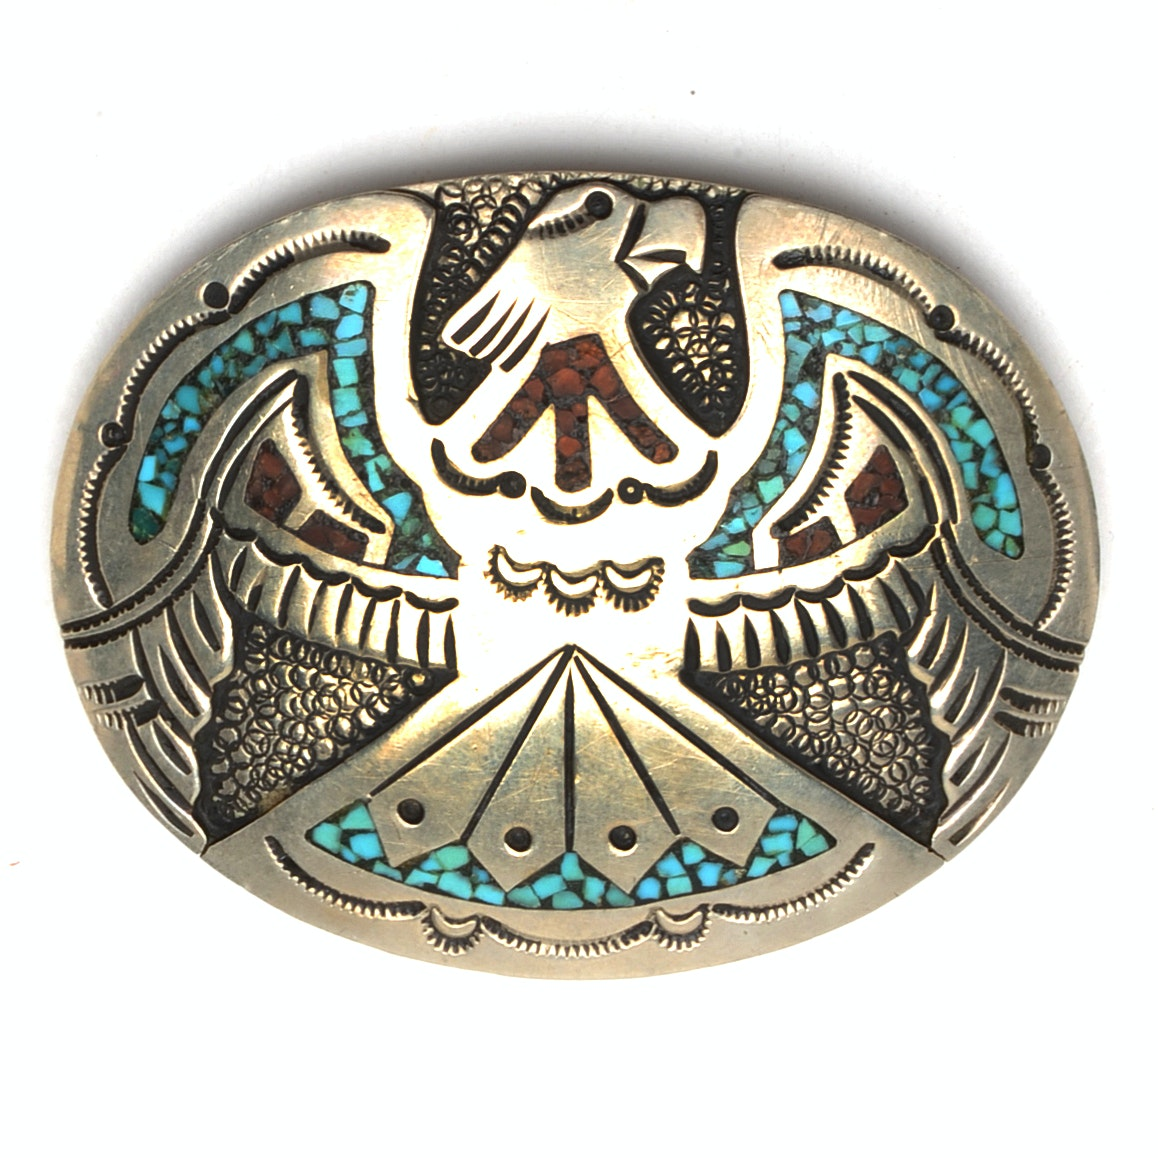 J. Nezzie Navajo Turquoise and Coral Inlaid Eagle Belt Buckle